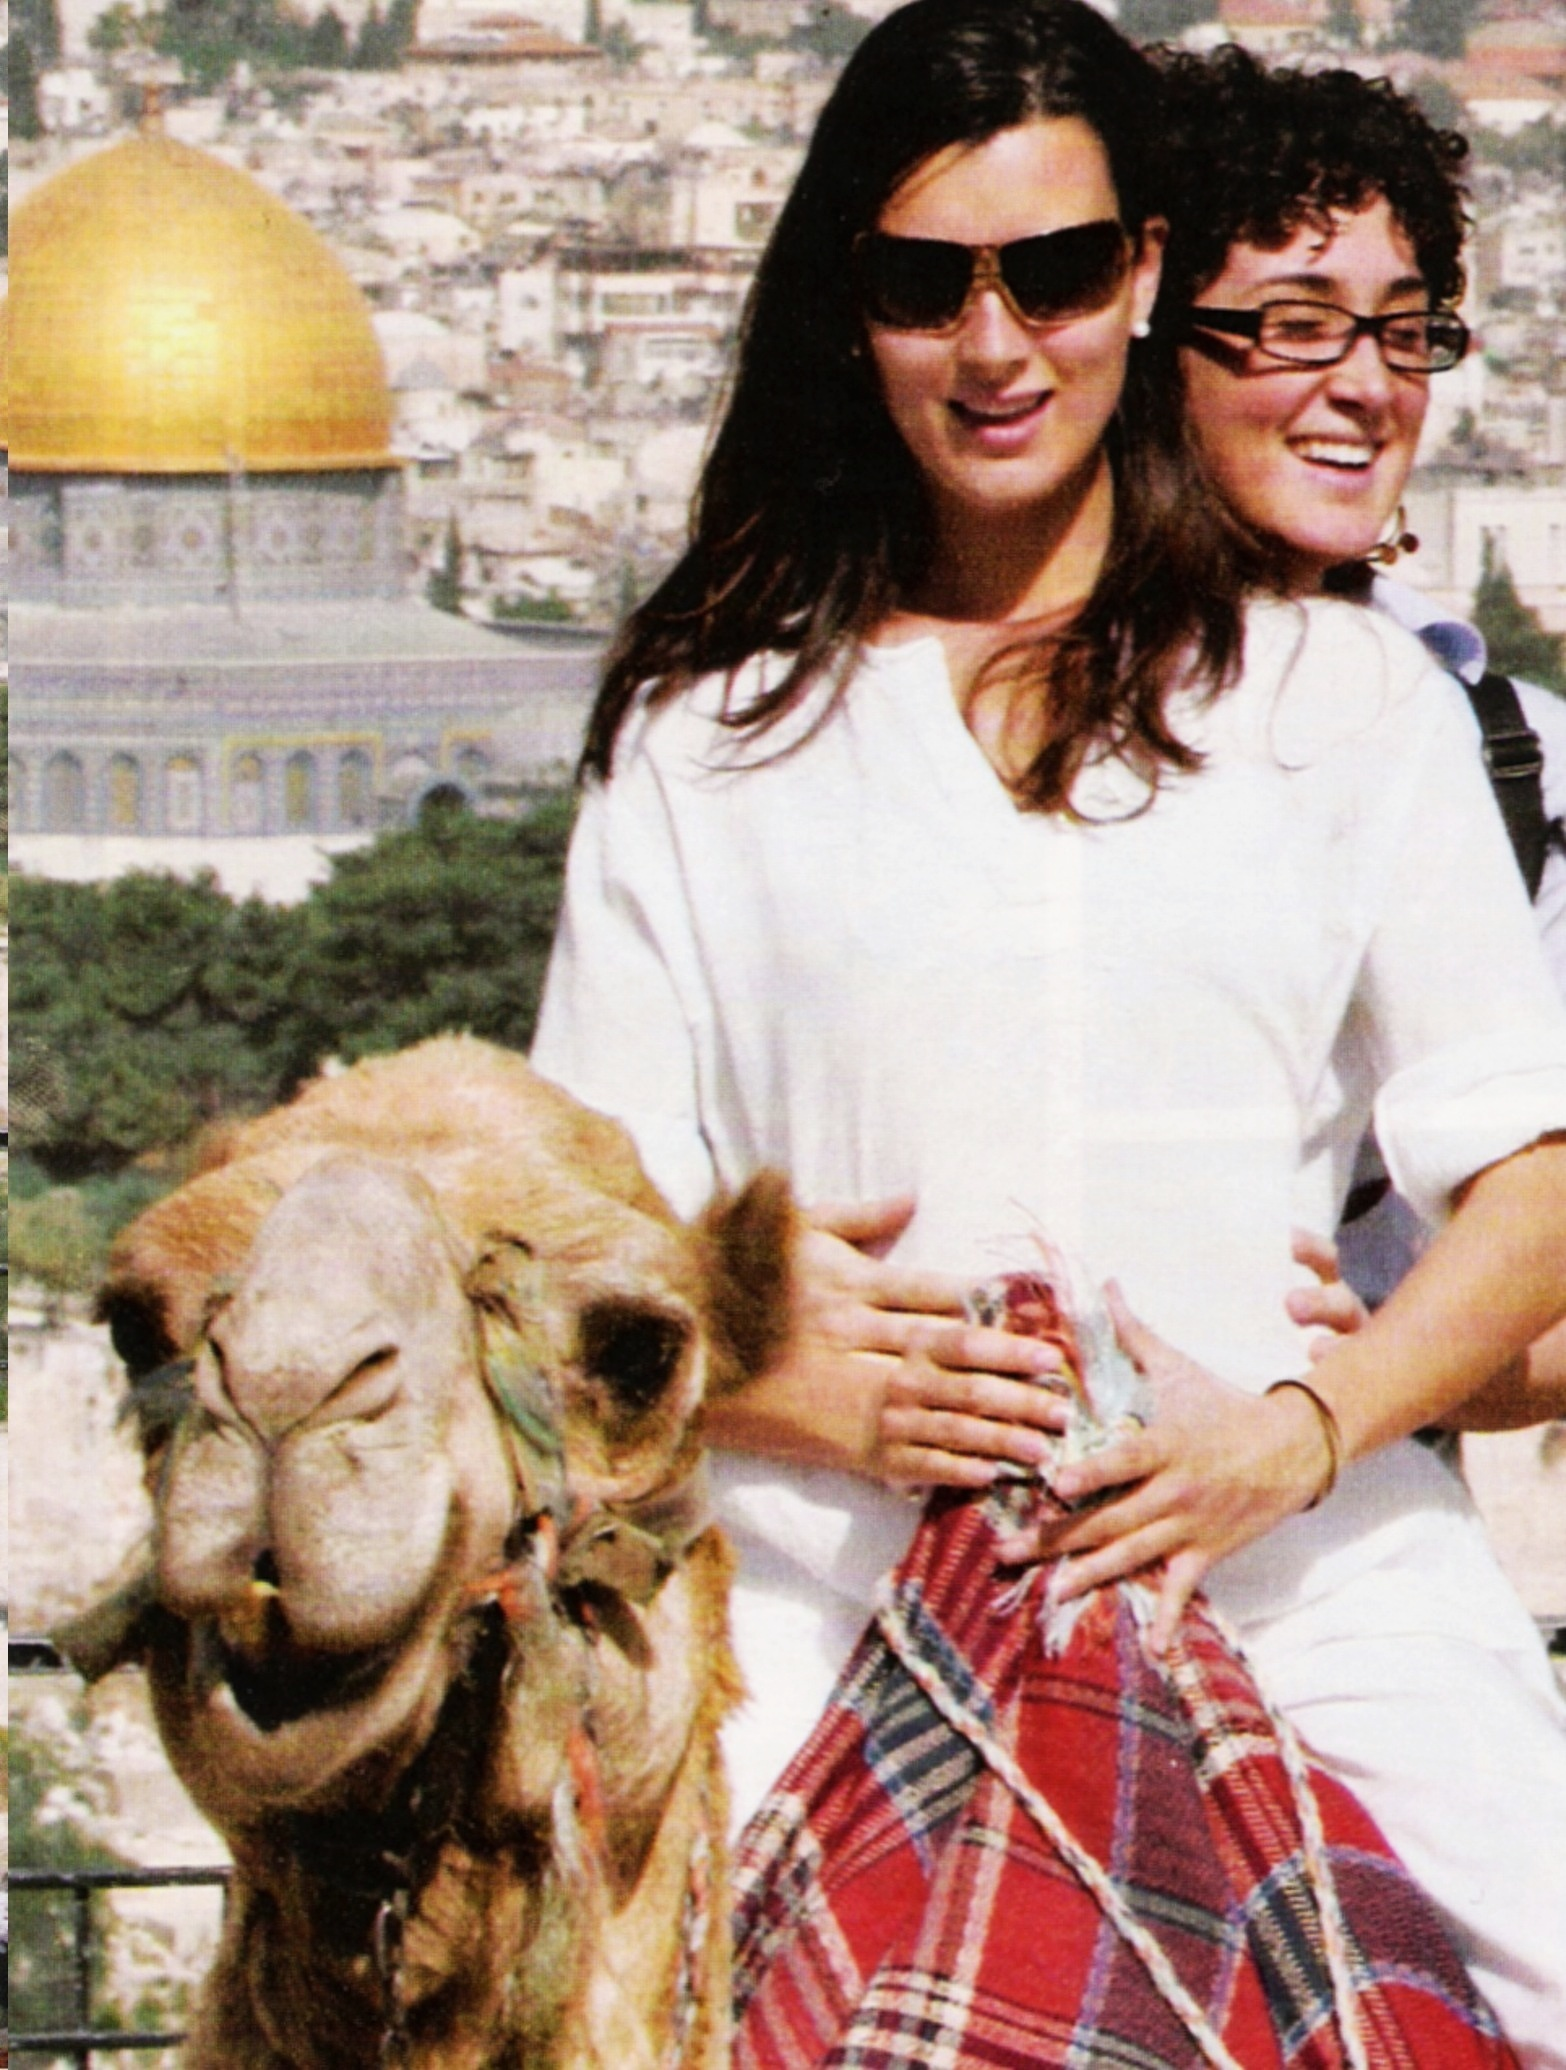 Cote with sister Andrea in Israel